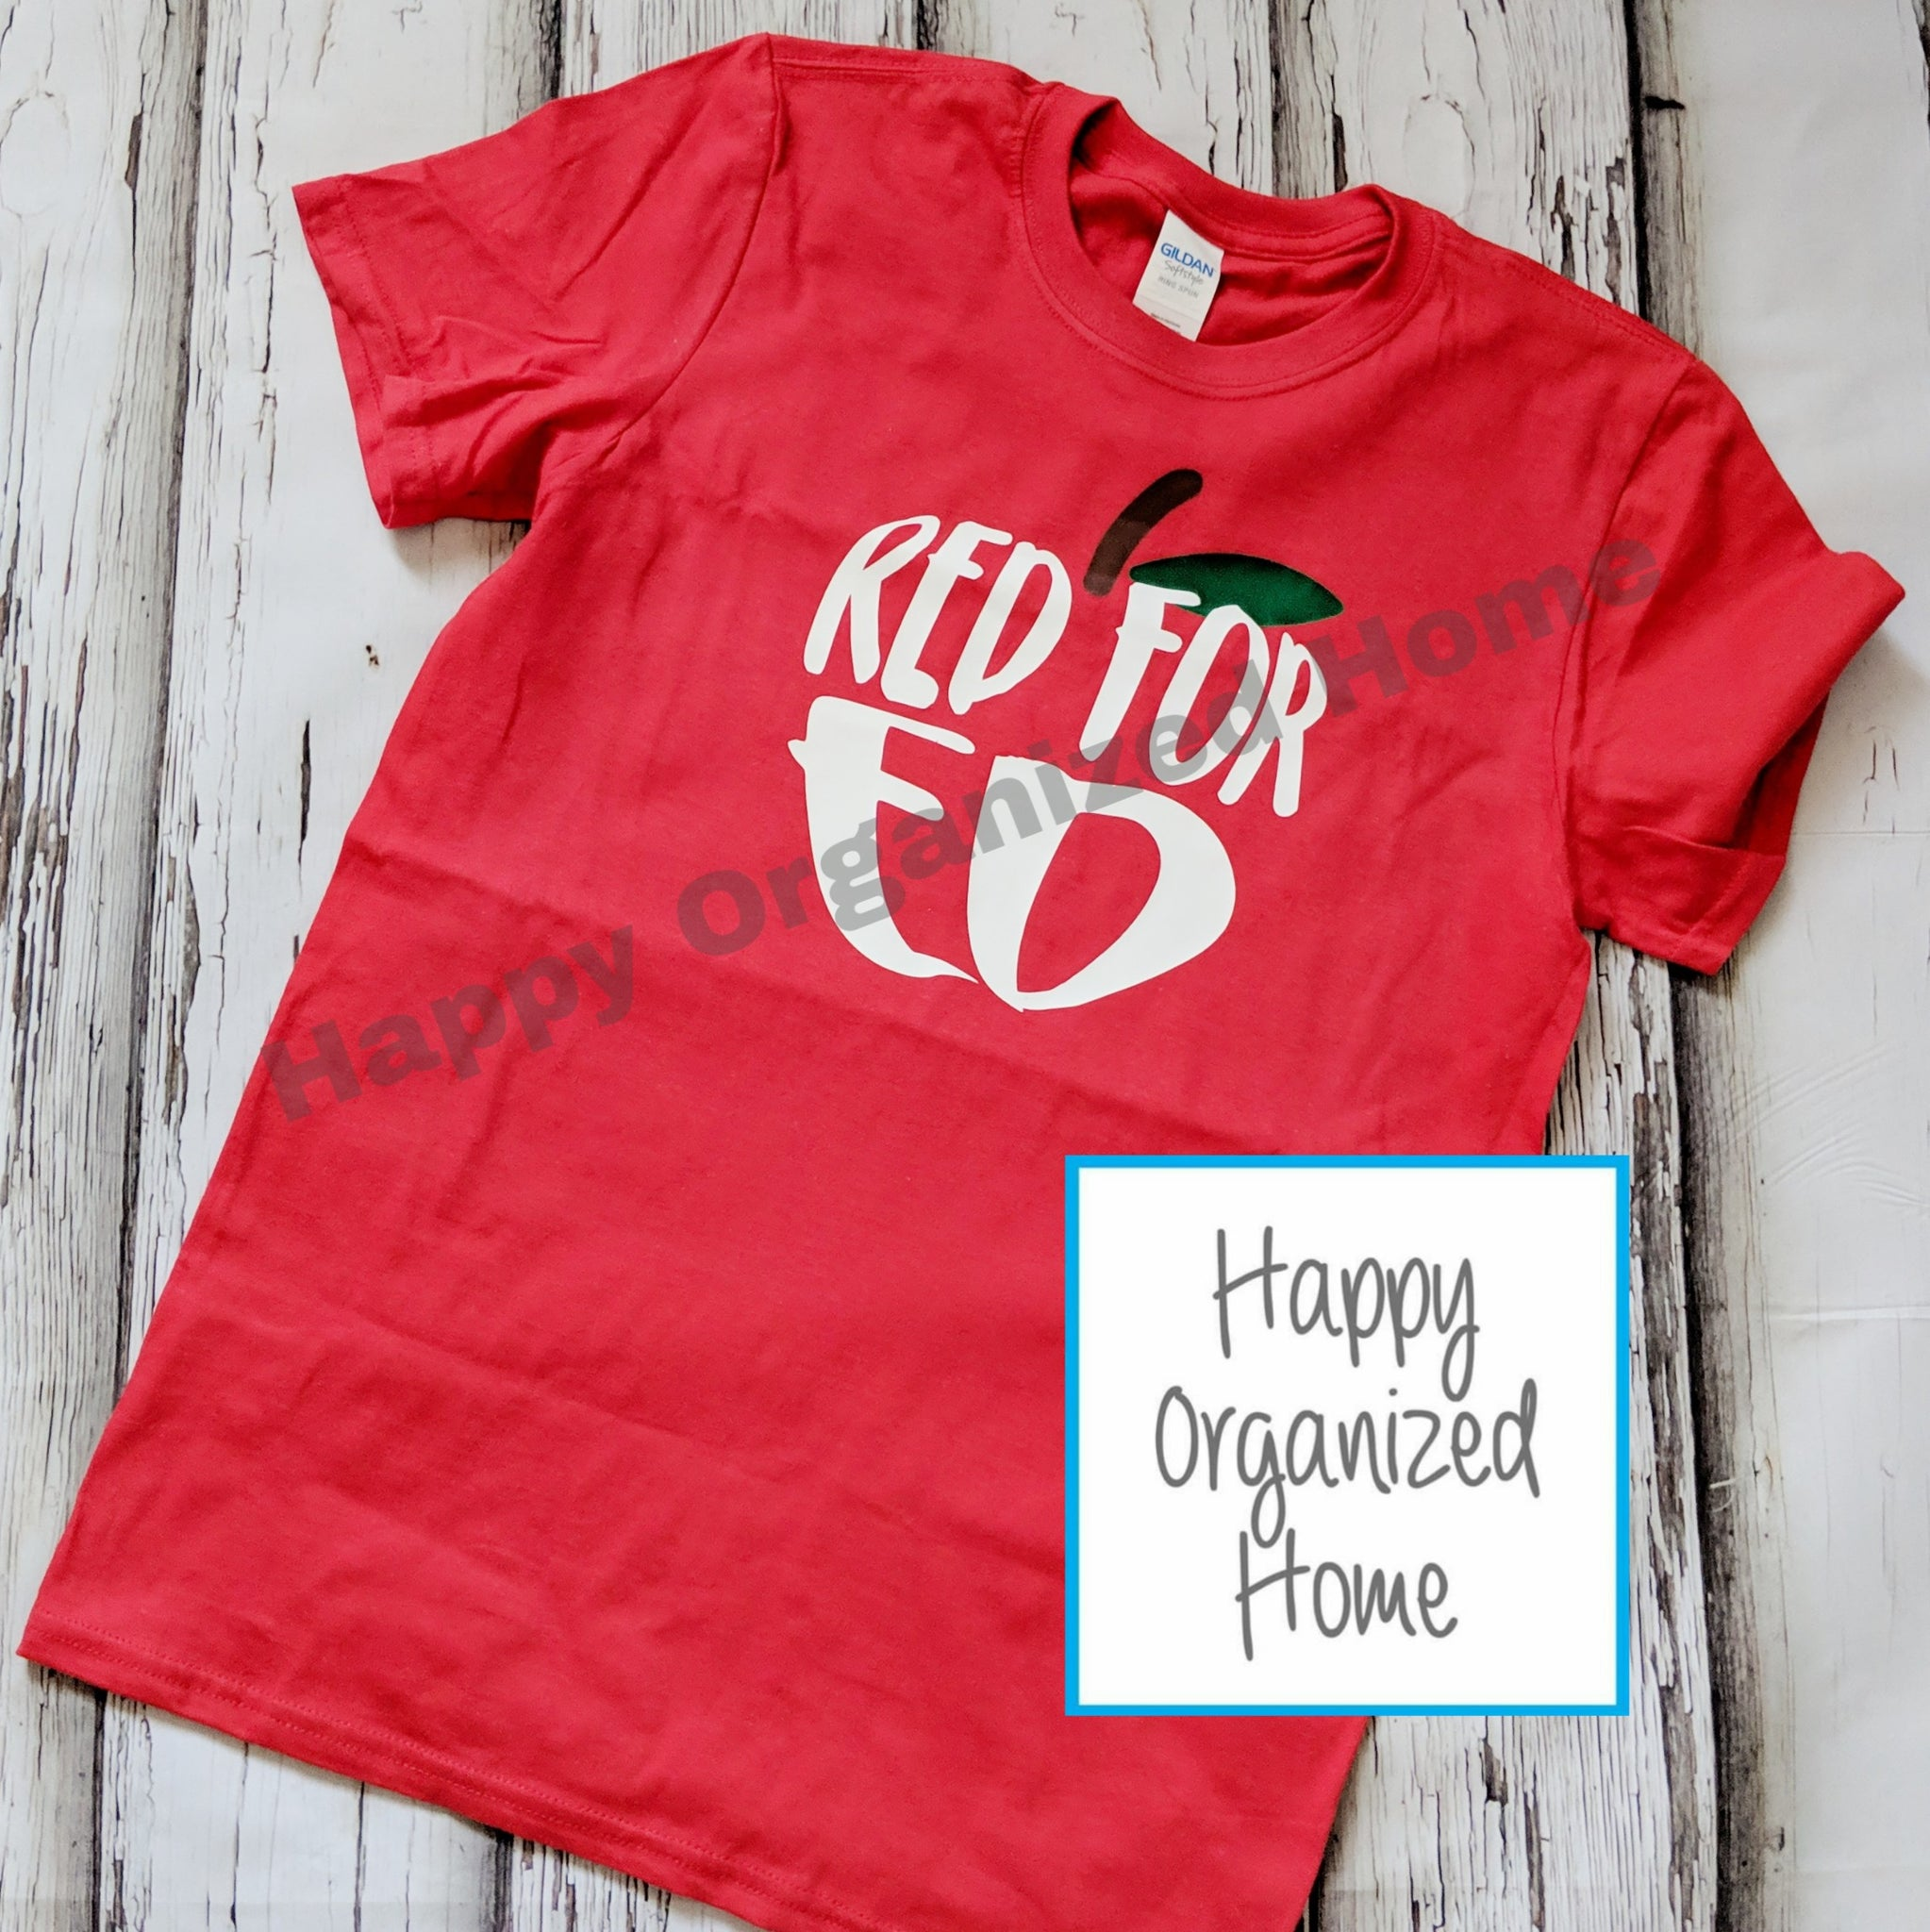 Red for Education Unisex Tshirt